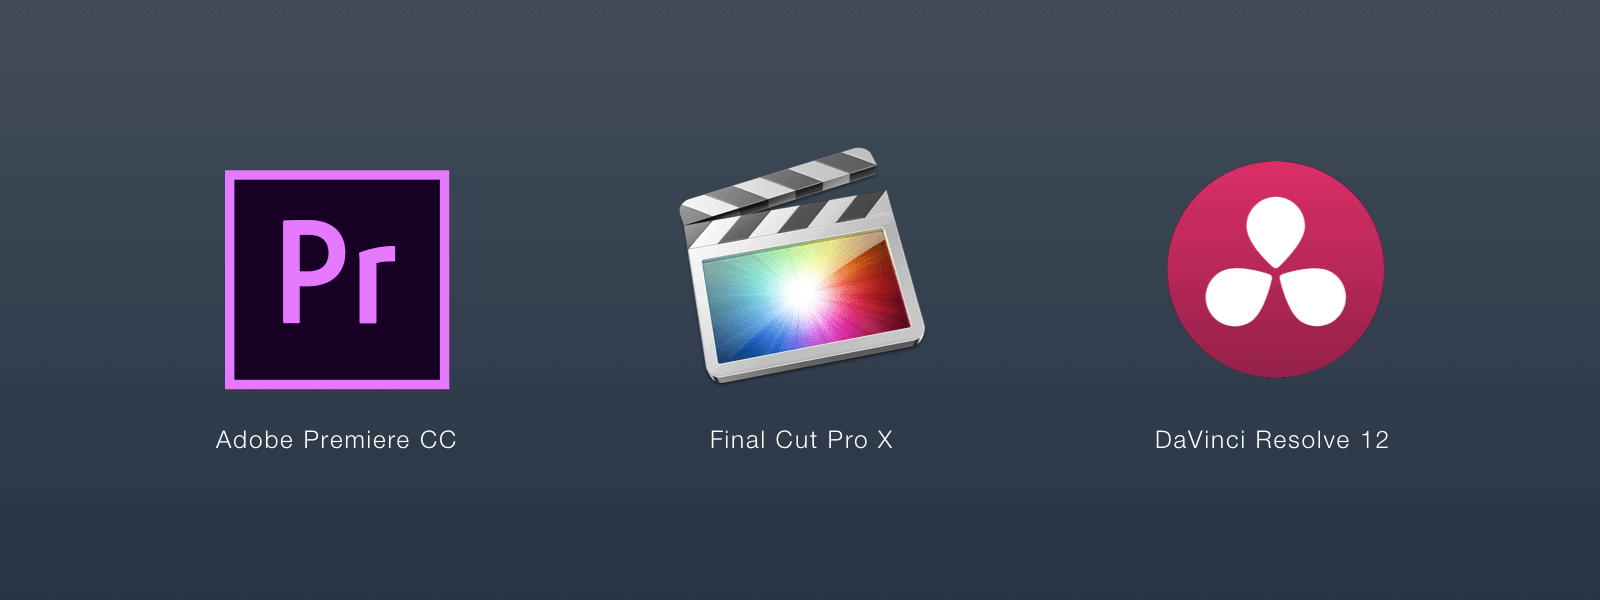 how to get final cut pro for free windows 7